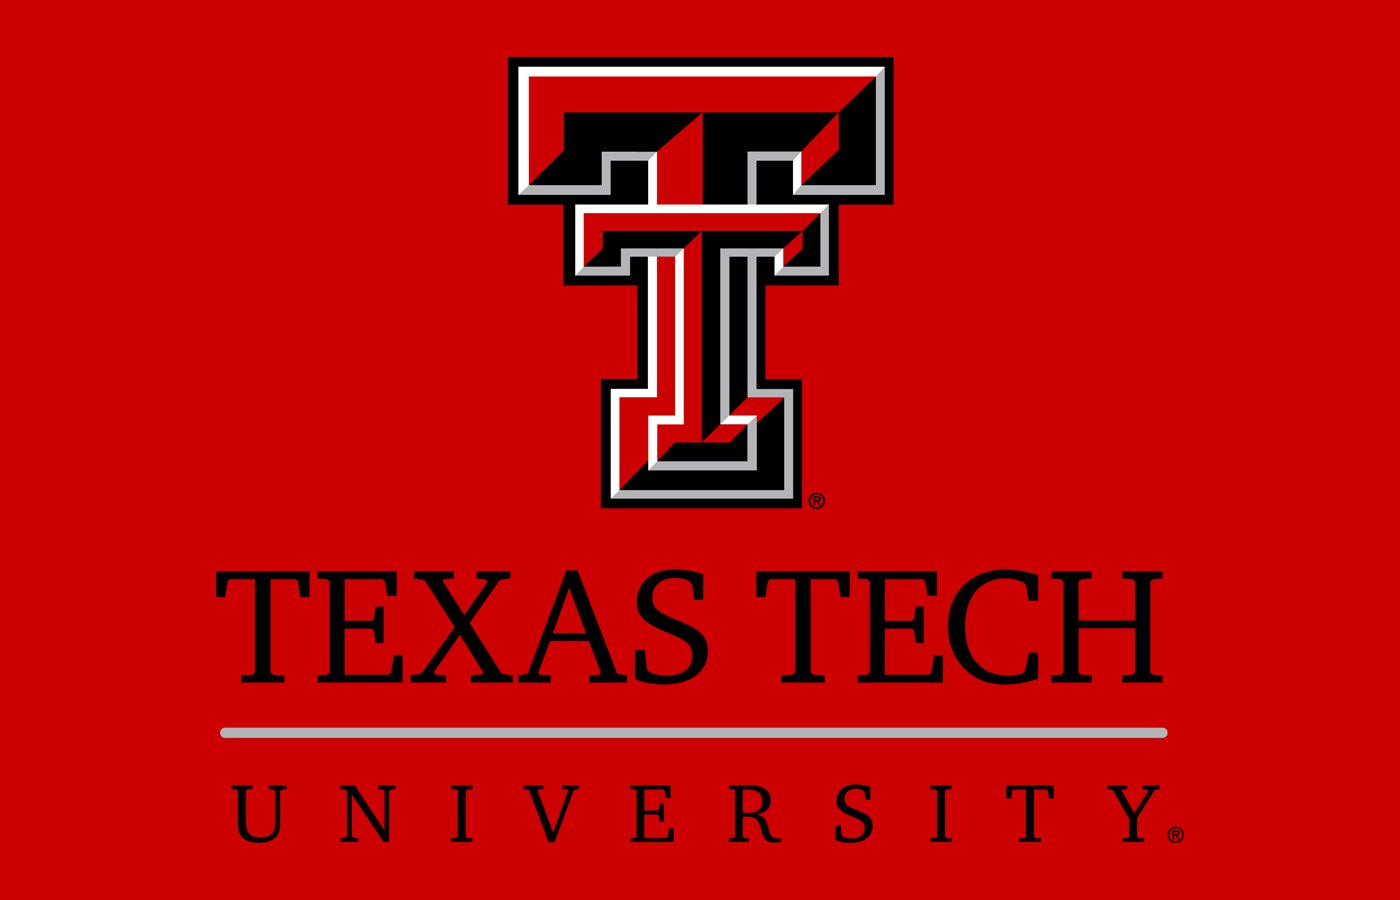 texas tech logo texas tech symbol meaning history and